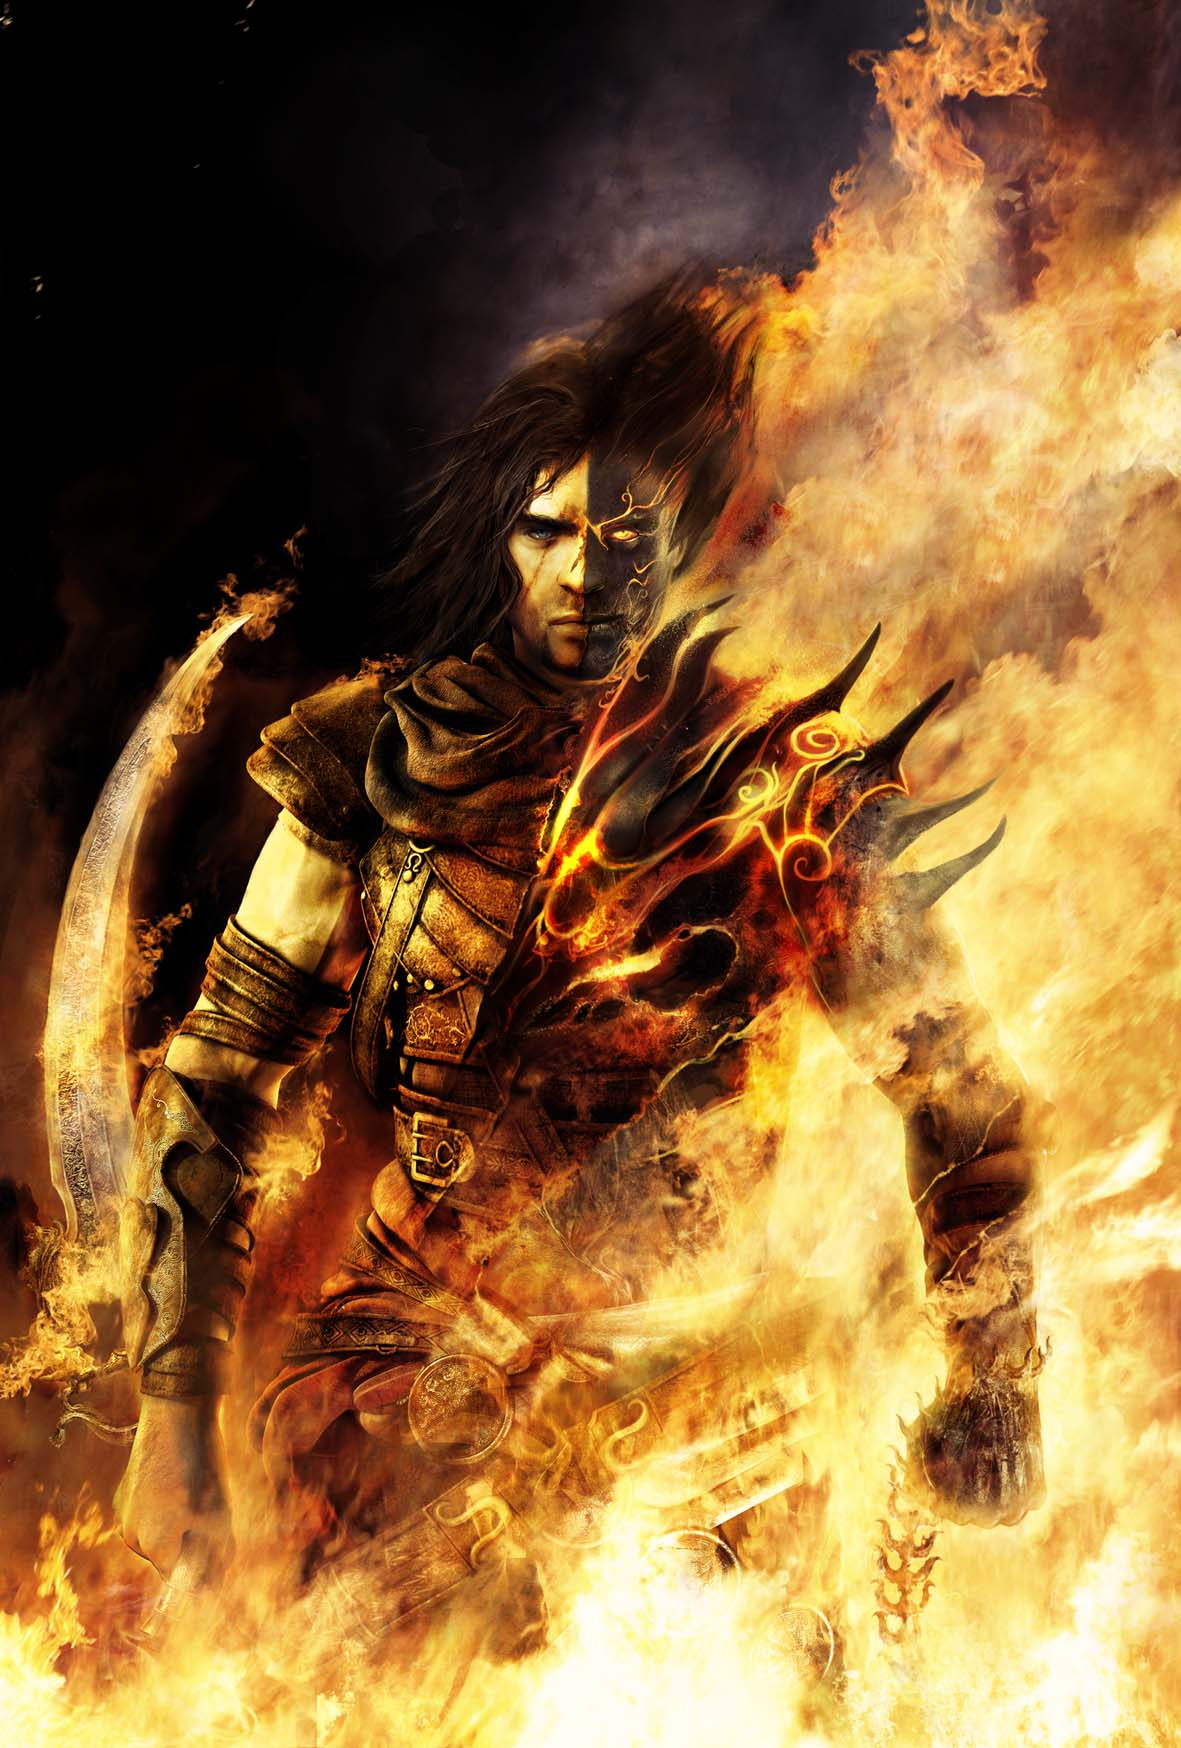 Prince of persia warrior within henti wallpapers exploited gallery